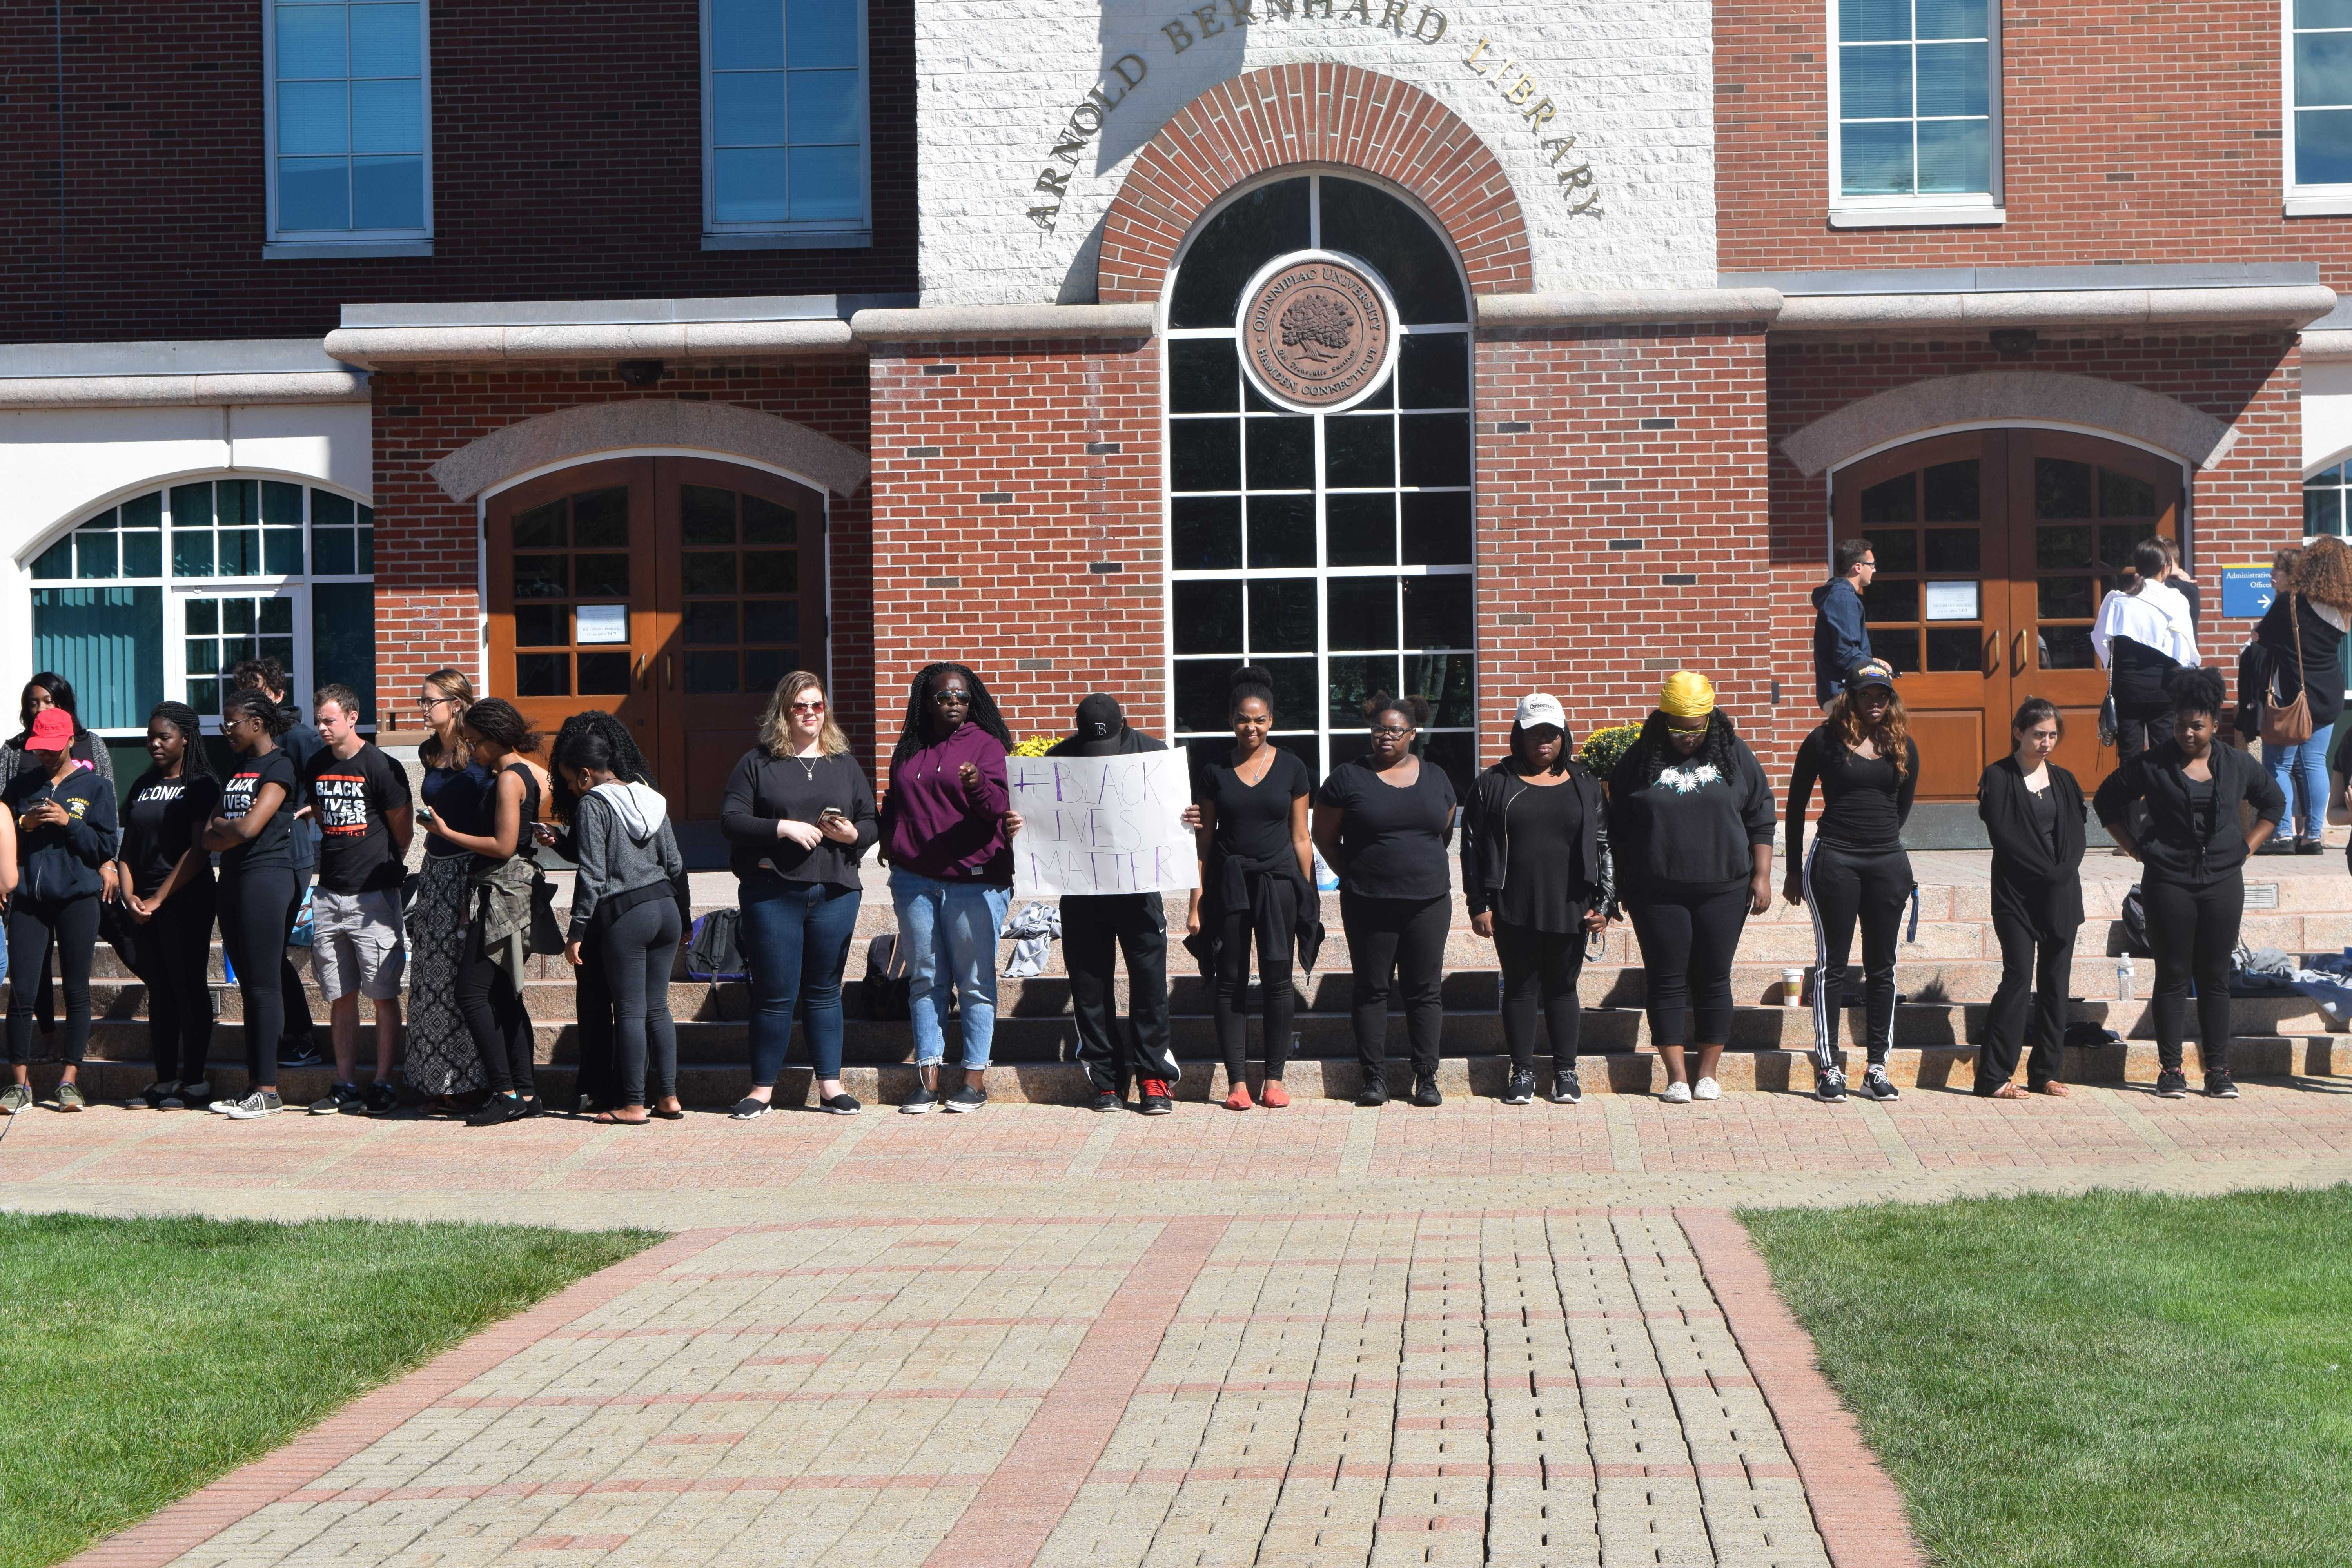 Community protests after controversial Snapchat photo